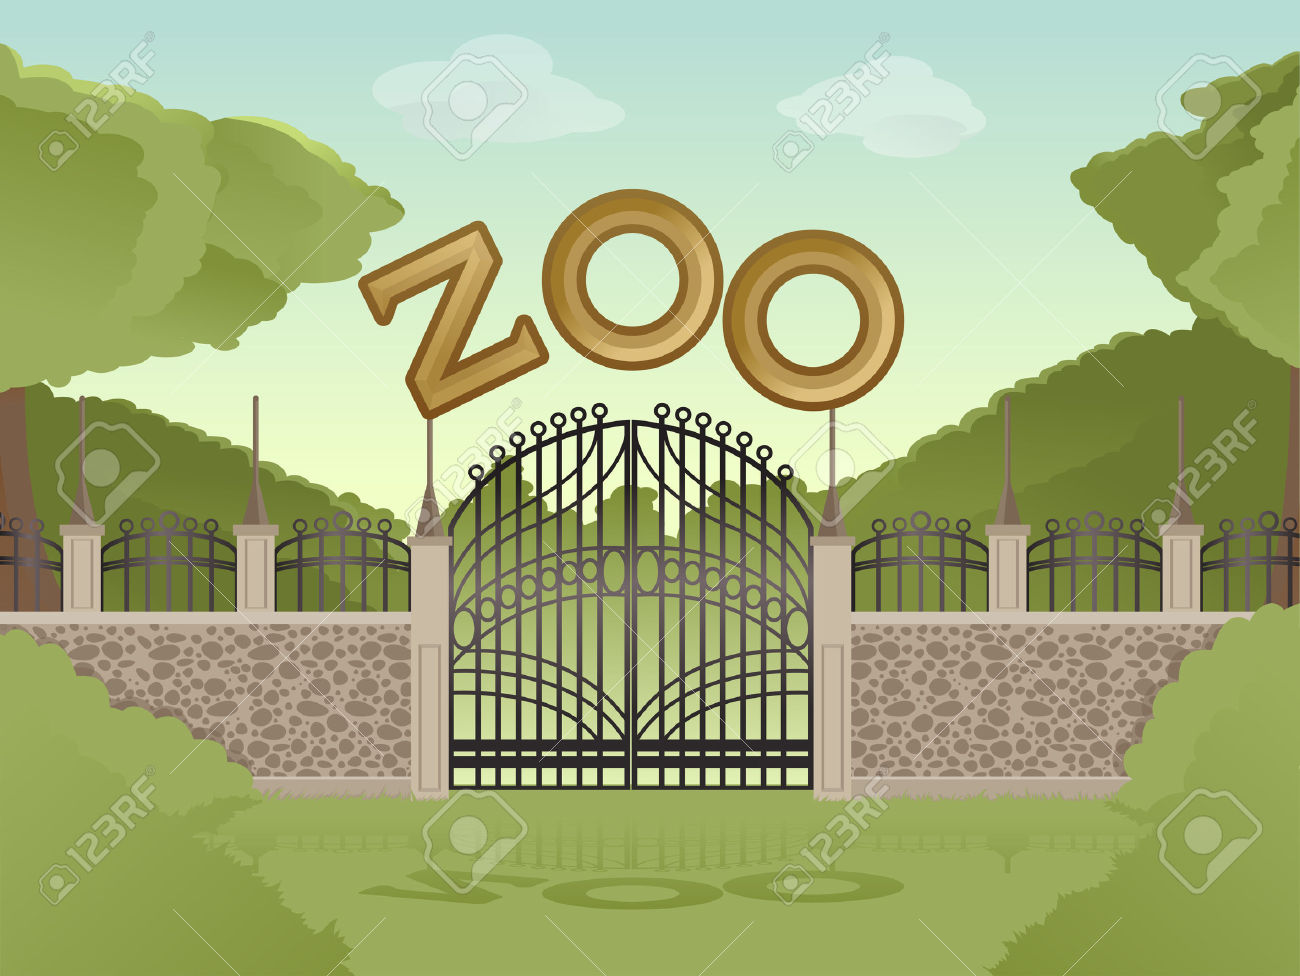 154 Zoo Gate Stock Vector Illustration And Royalty Free Zoo Gate.